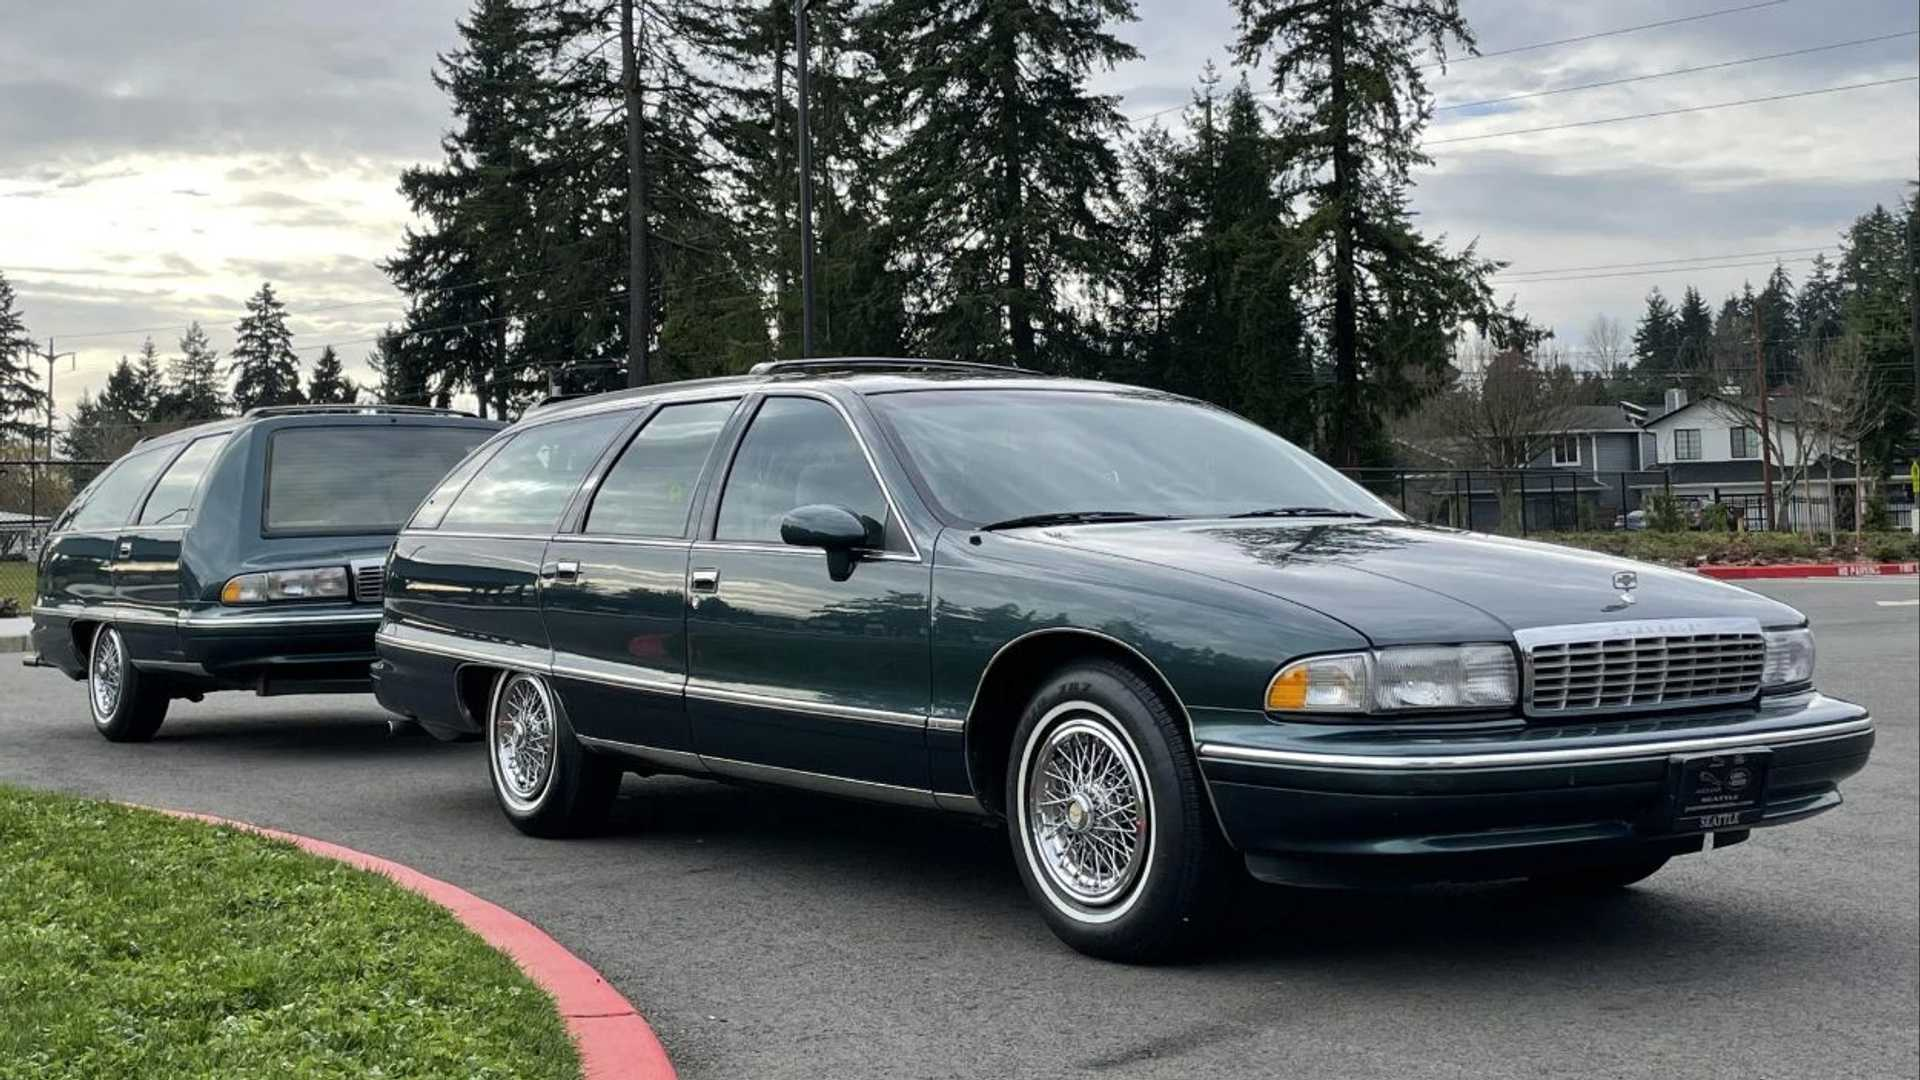 Buy This Chevy Caprice Wagon With Matching Trailer Rule All Estates